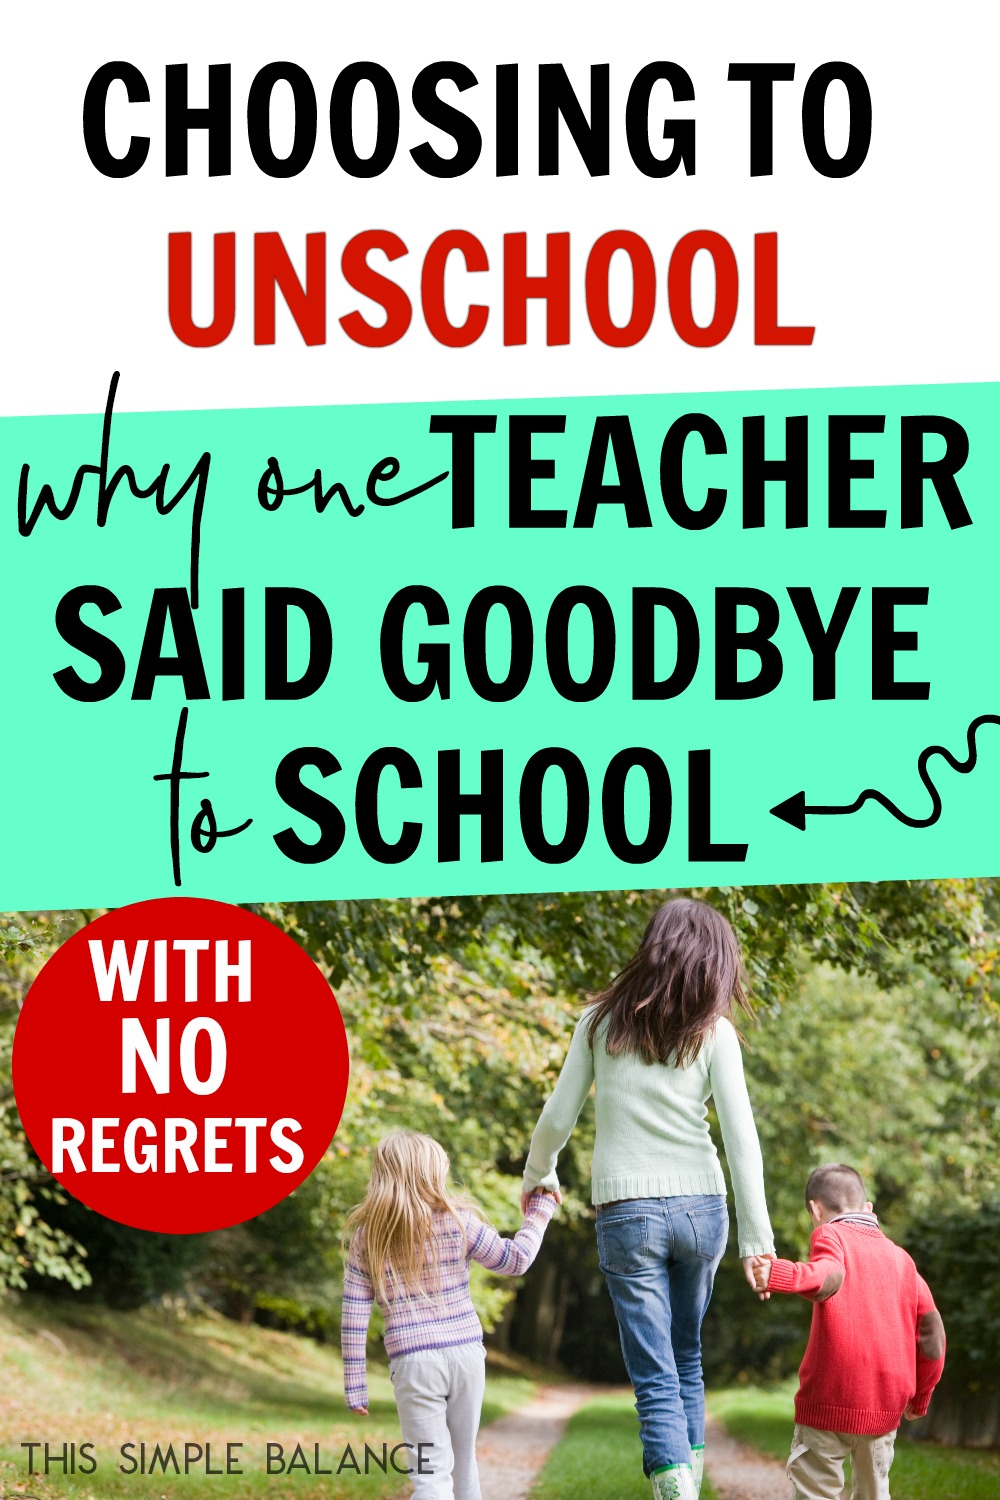 Unschooling isn't just for radicals. Down to earth, former teachers choose unschooling, too. Get the full story on why a former teacher walked away from traditional education, and why she's LOVING it!